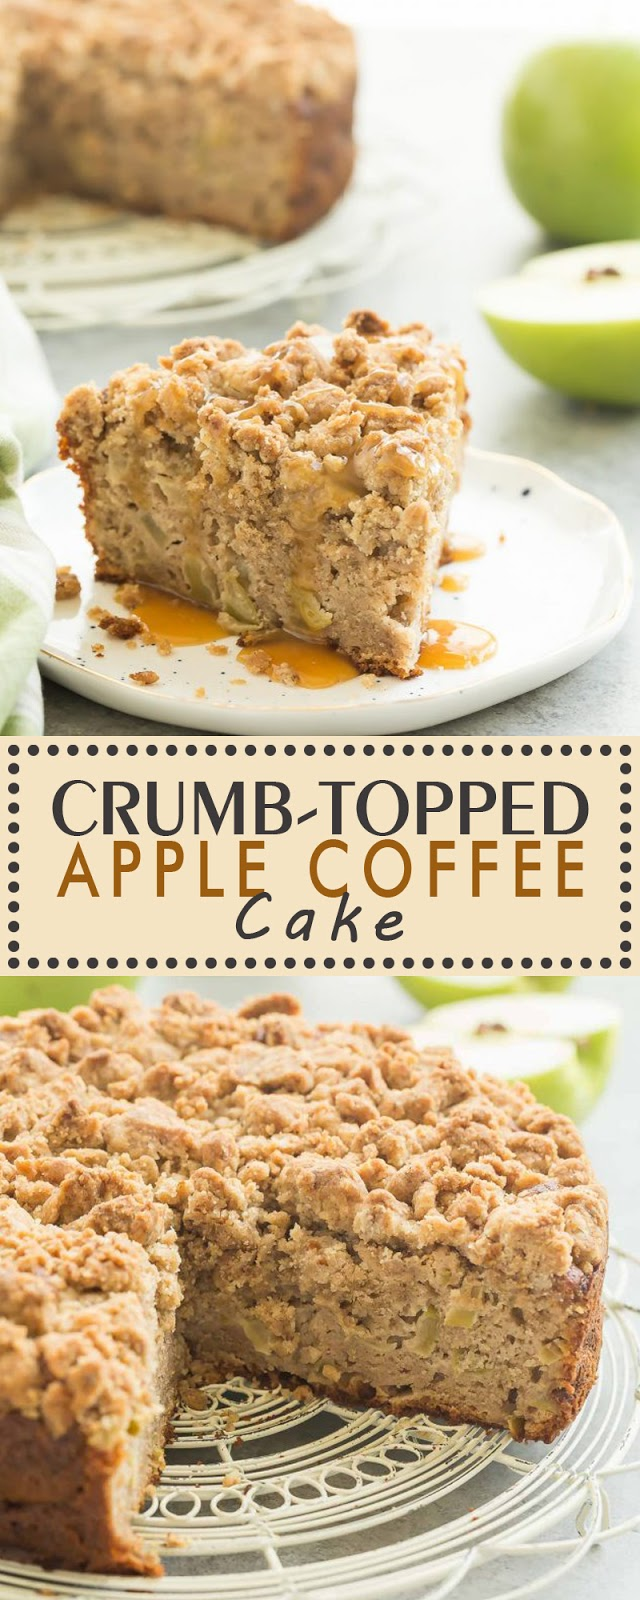 CRUMB-TOPPED APPLE COFFEE CAKE